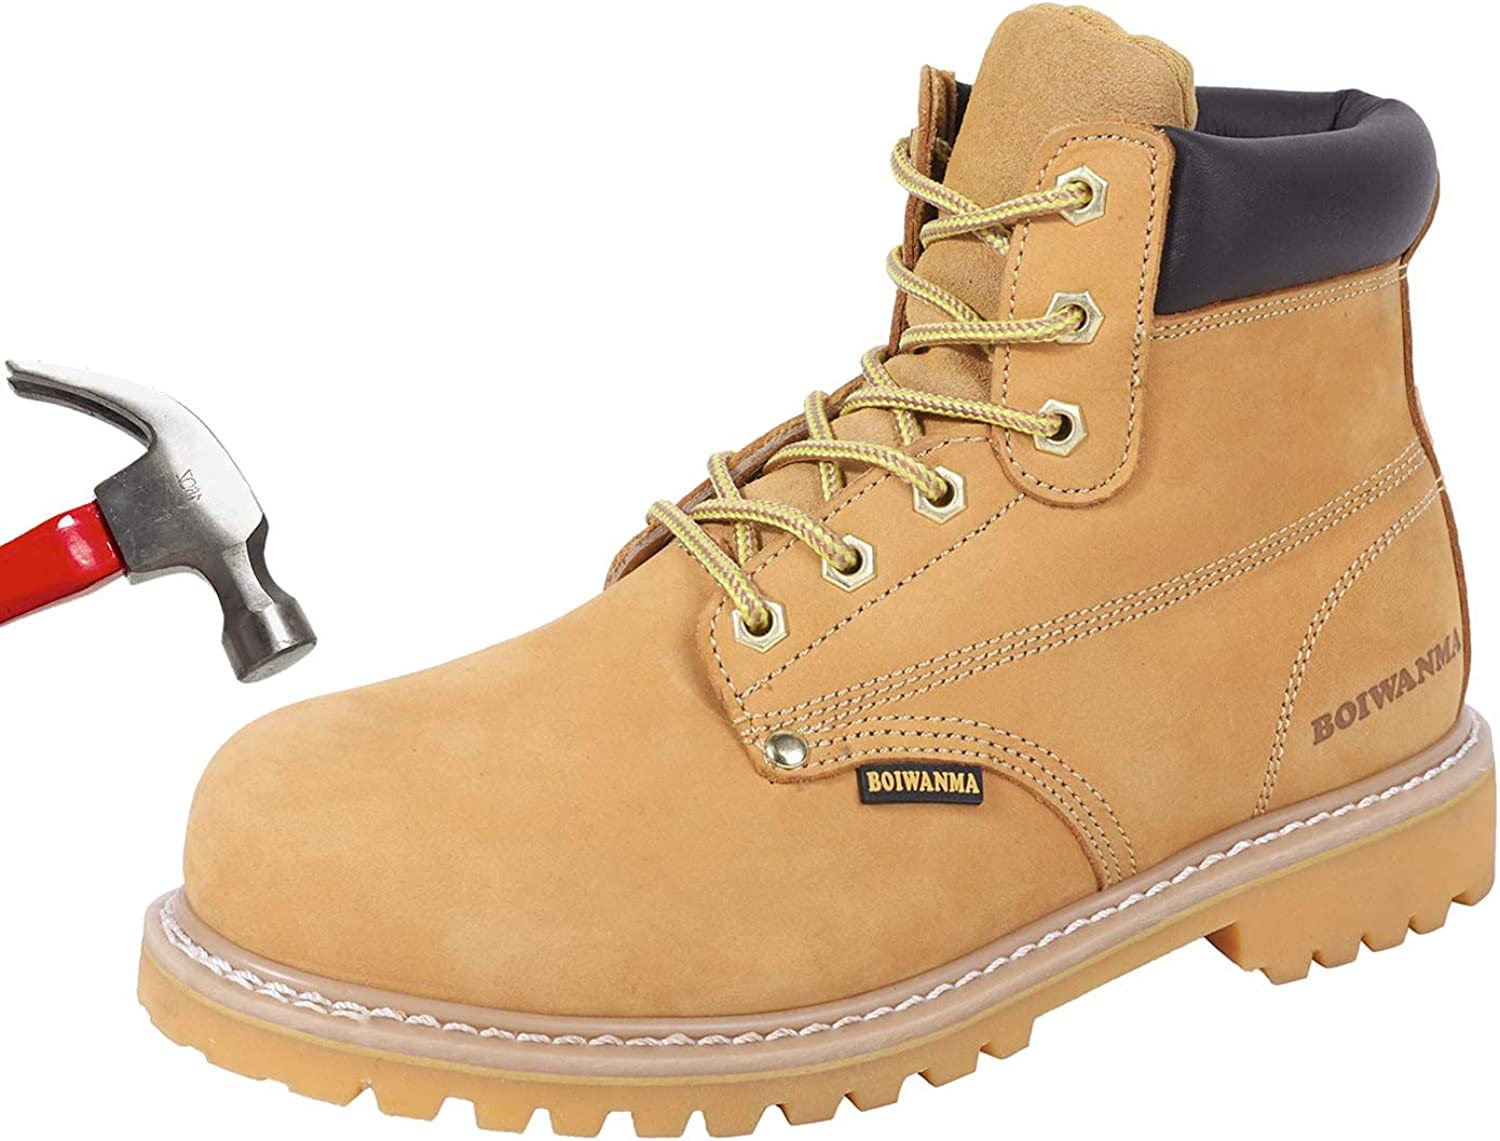 BOIWANMA Steel Toe Work Safety Boots for Men, Comfortable Work Shoes Durable Leather Non-Slip Oil-Resistant Lightweight Rubber Sole Construction Industrial Electrician Work Boots